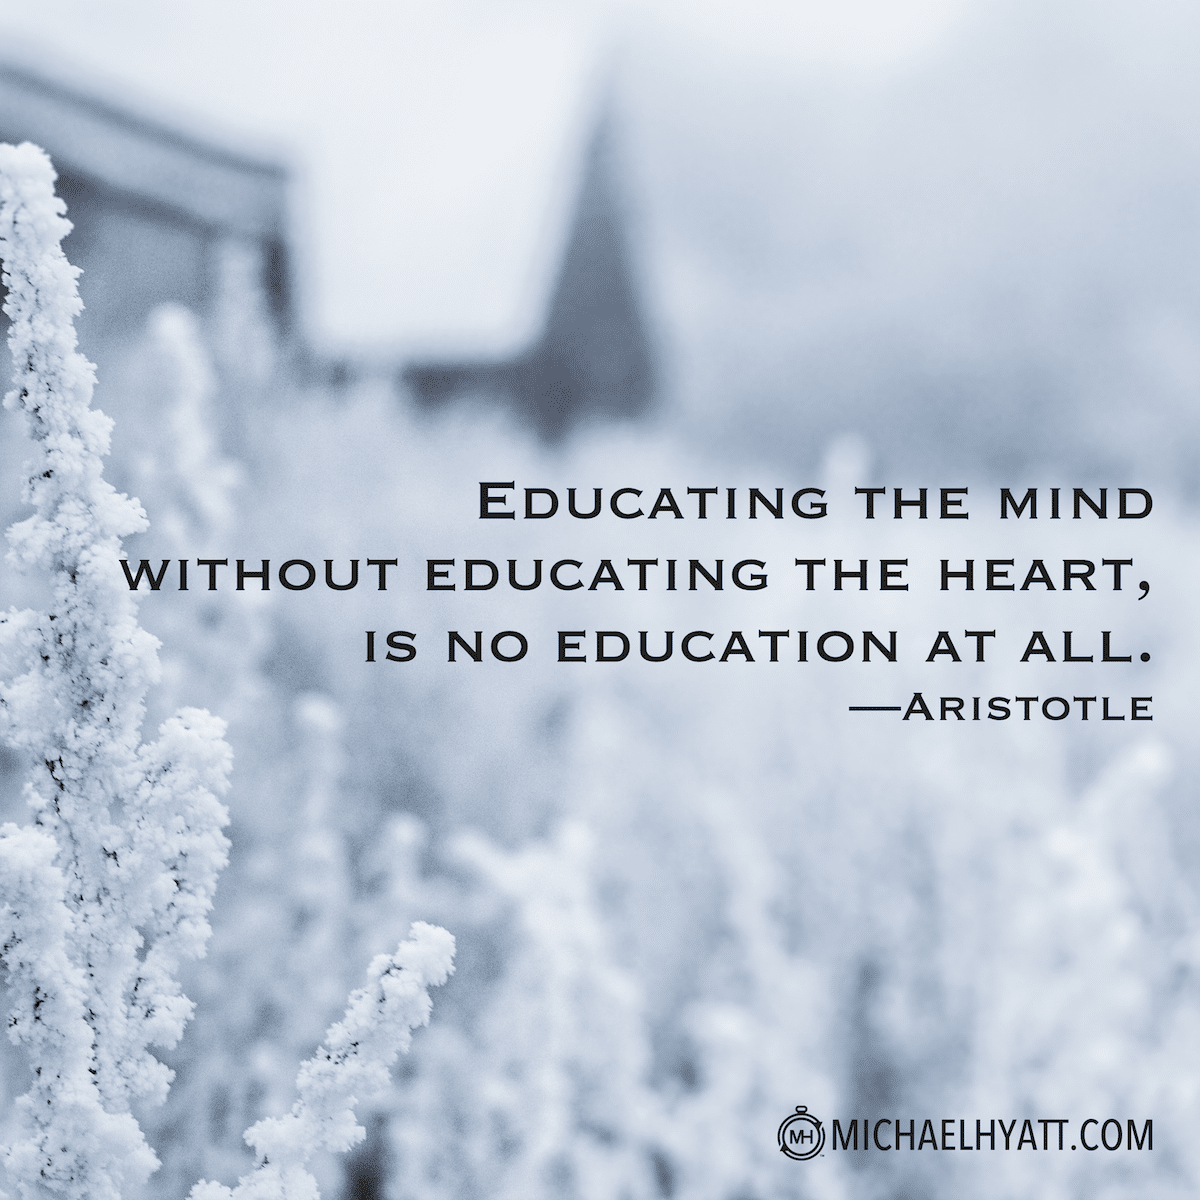 Education And Life Quotes Educating The Mind Without Educating The Heart Is No Education At